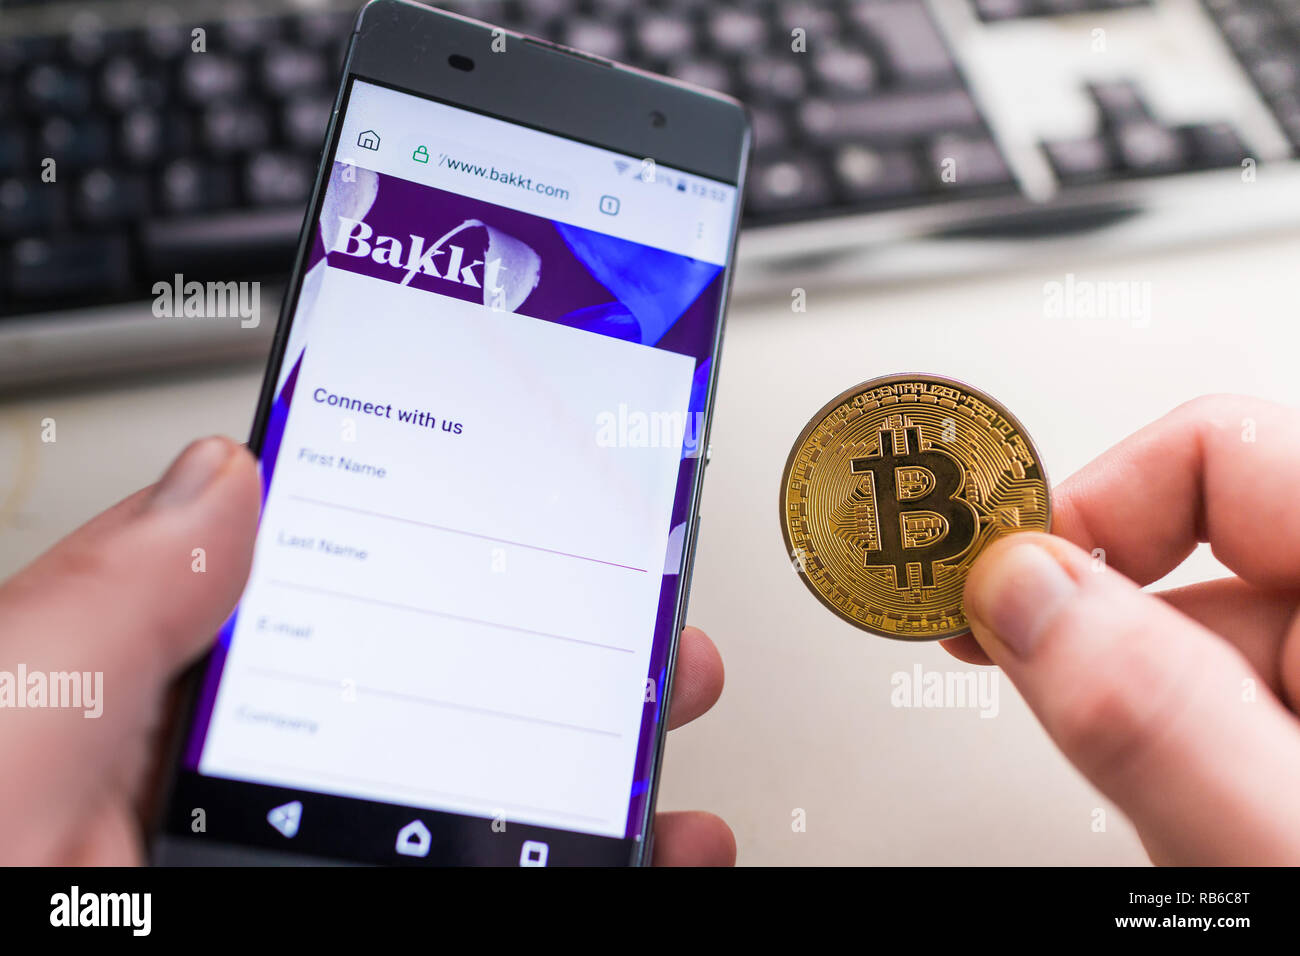 SLOVENIA - JANUARY 8, 2019: Man holding Bitcoin coin and in other hand smartphone with opened Bakkt website. - Stock Image